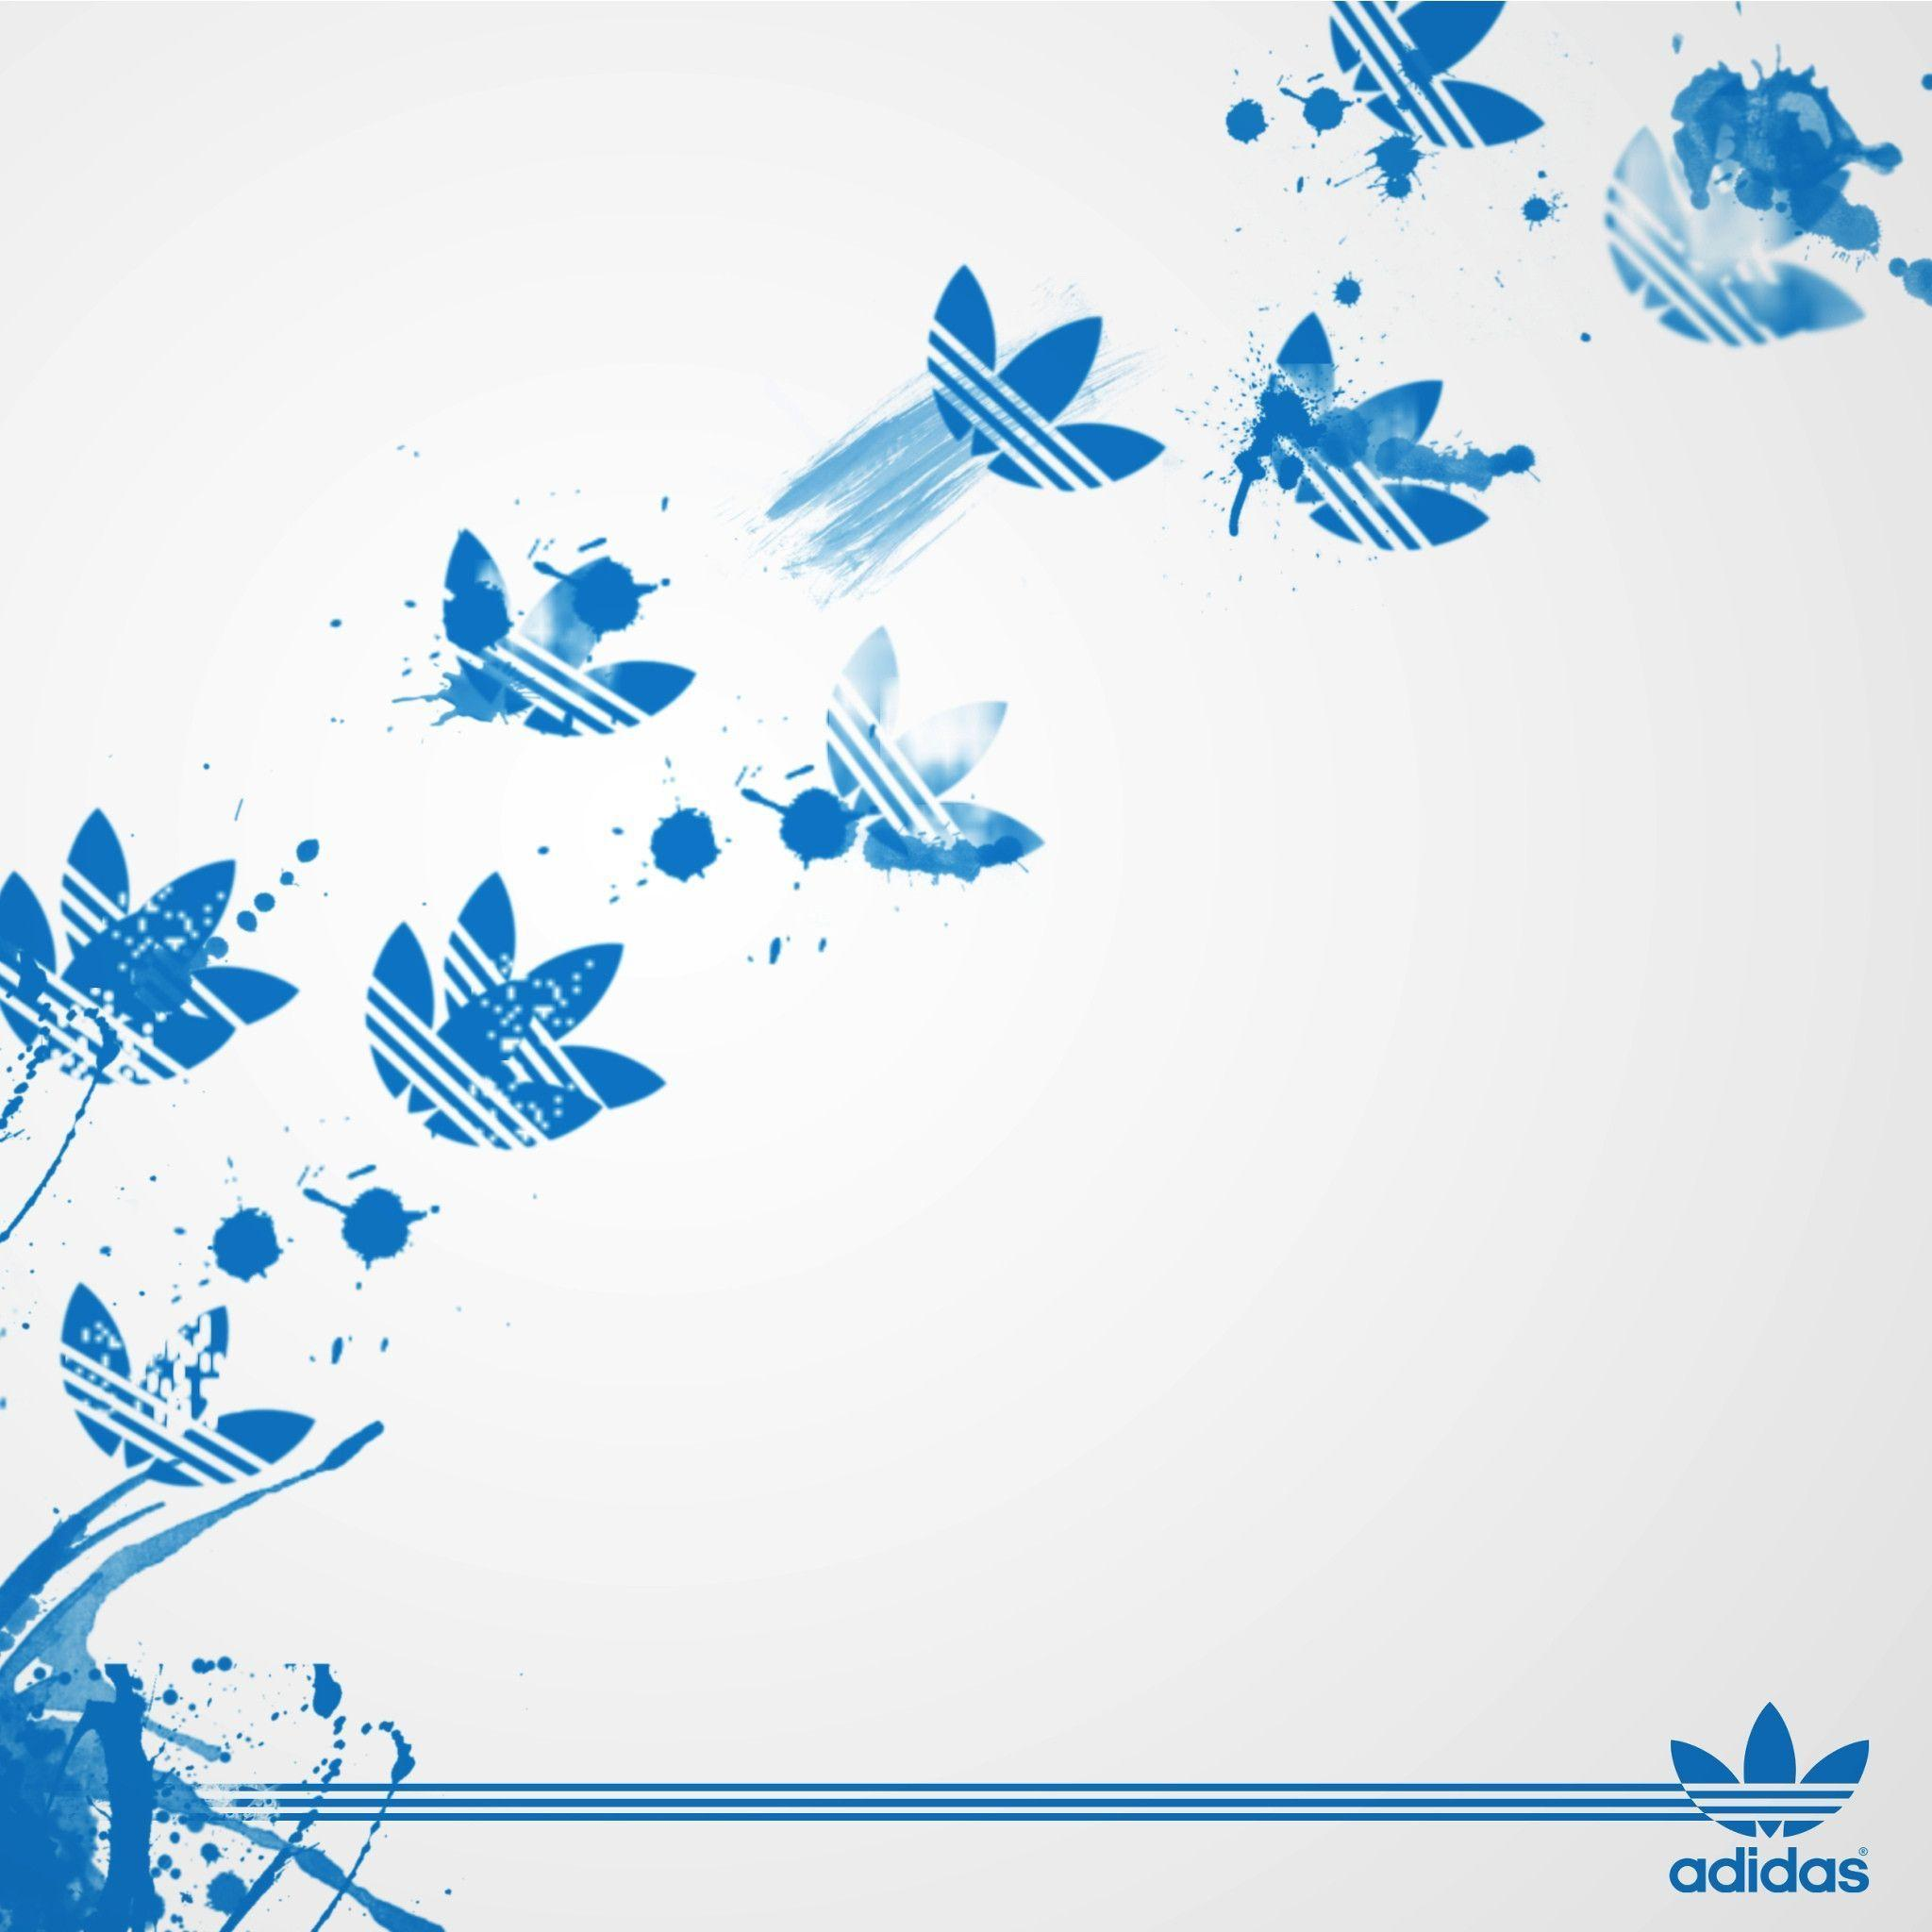 adidas originals wallpaper